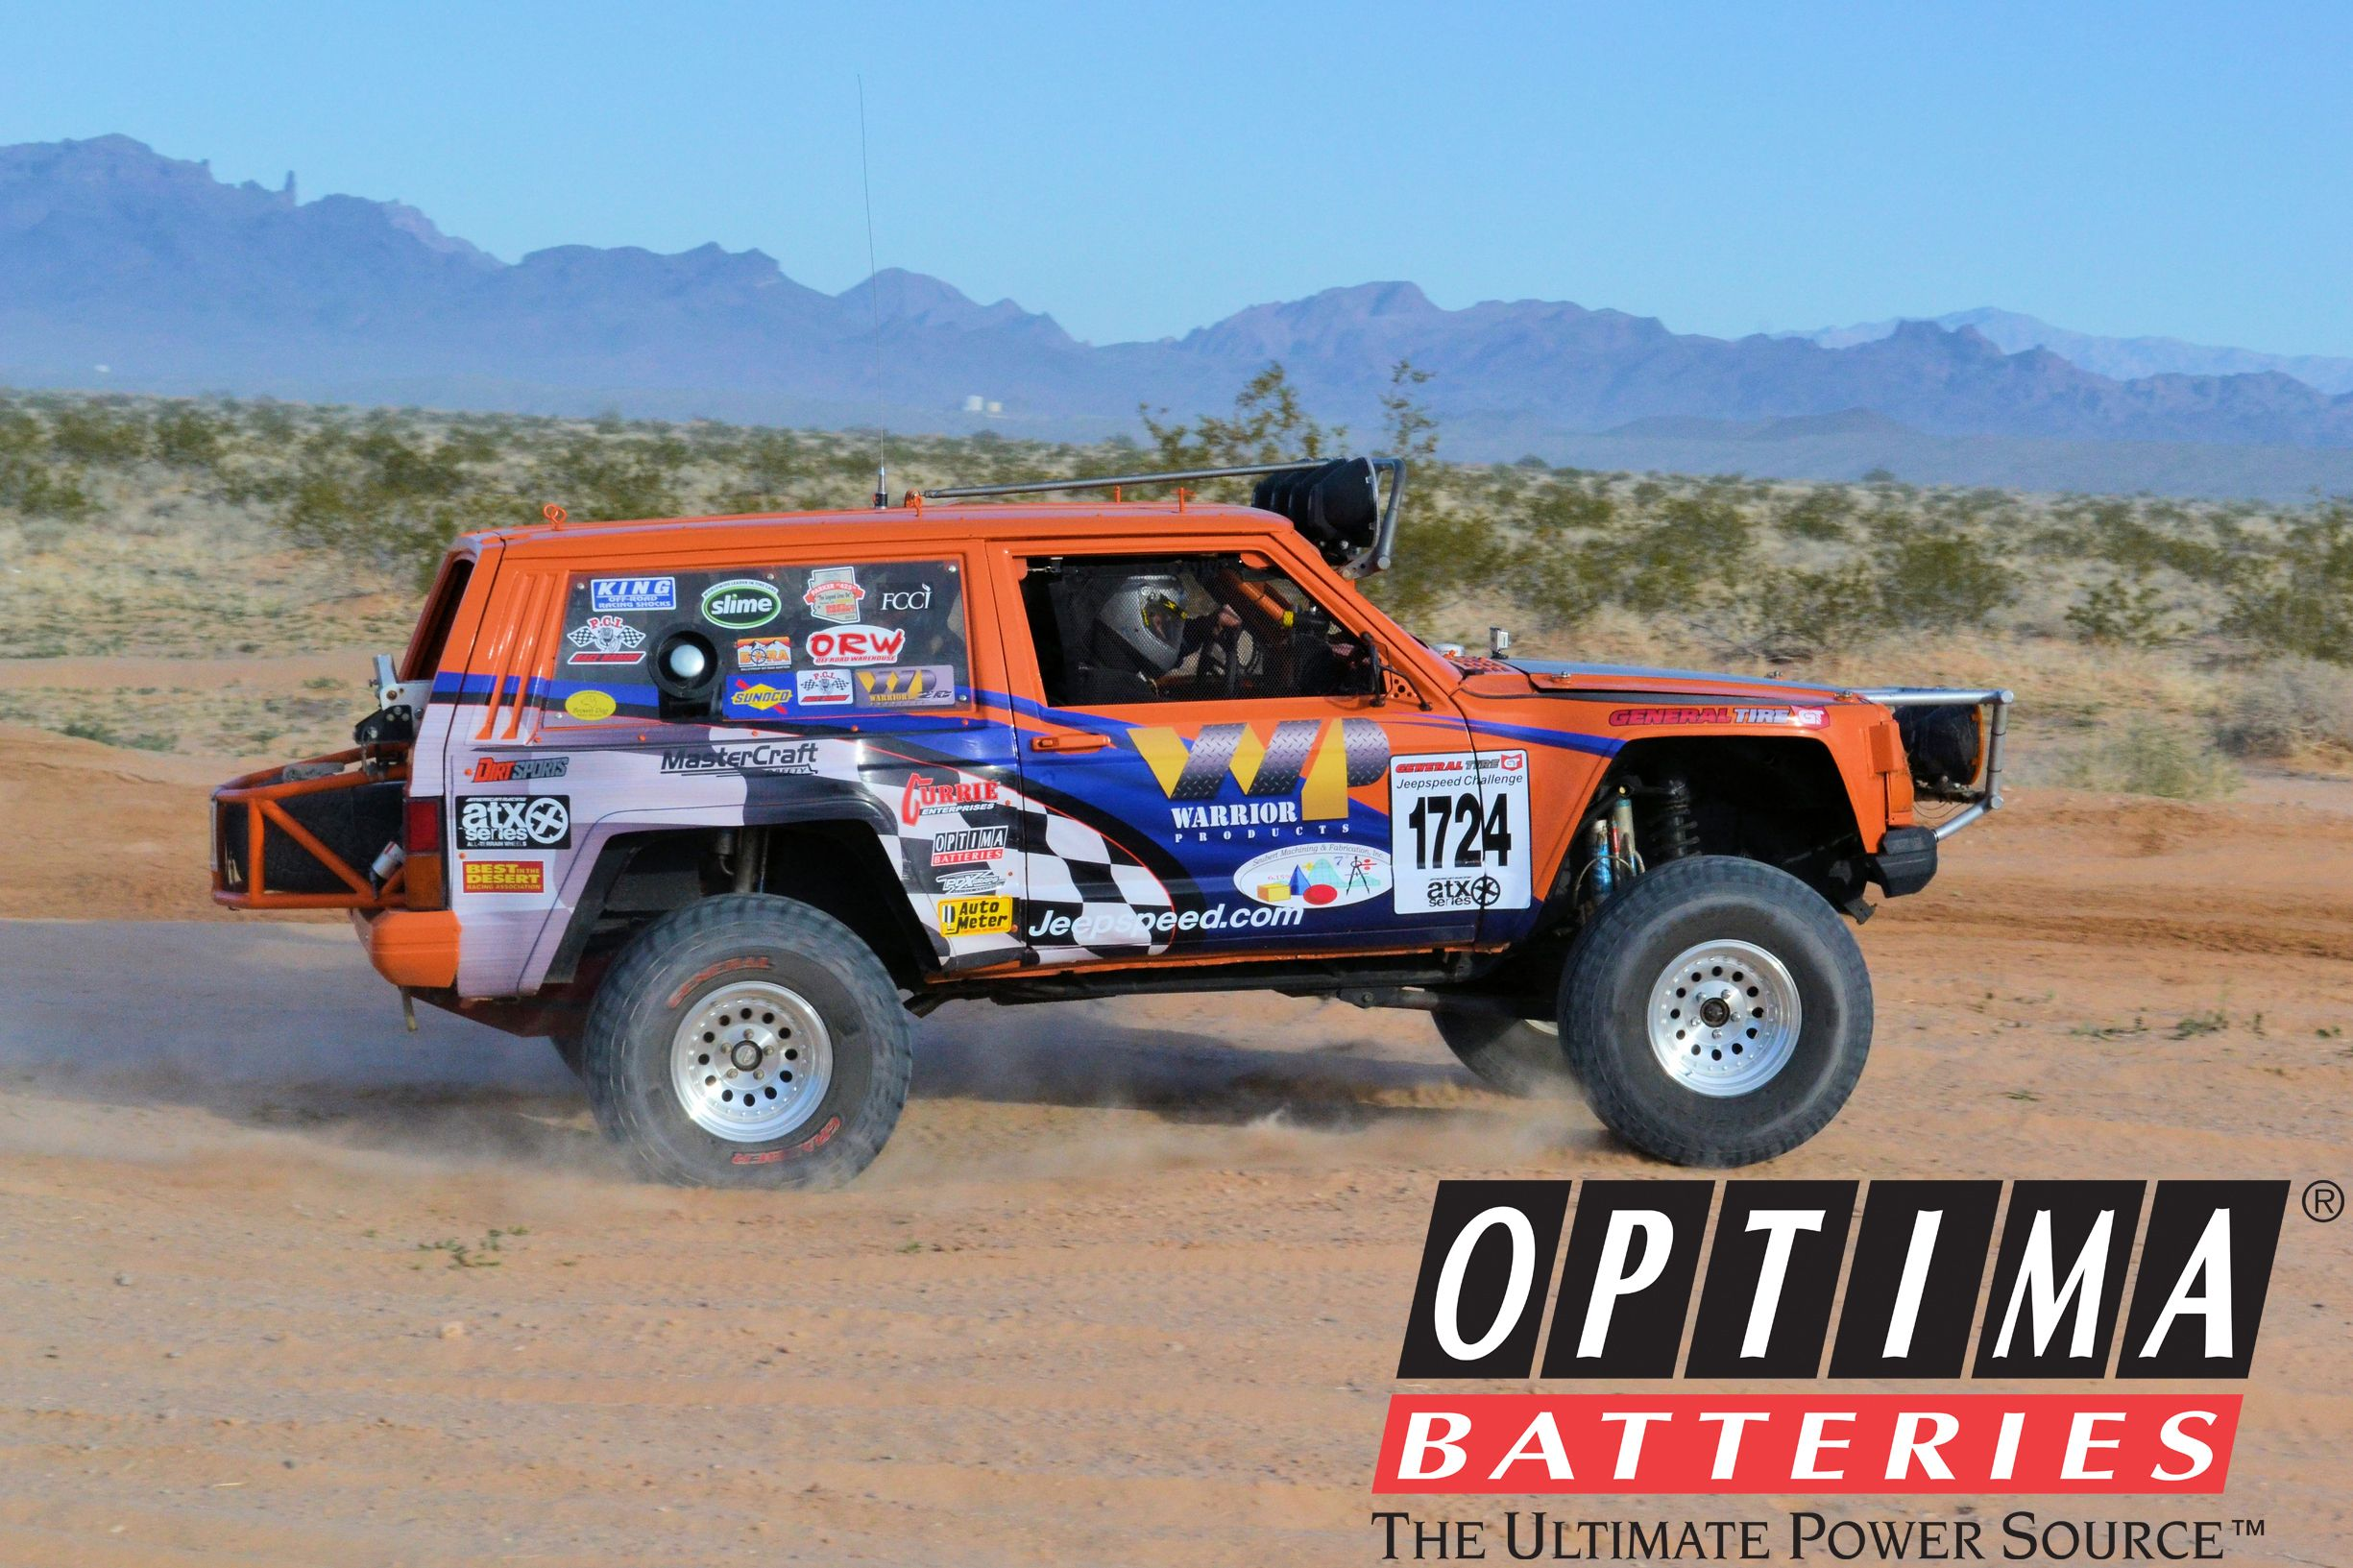 Team Wp Races Their Optima Sponsored Jeepspeed Entry In The Best In The Desert Series Trucks Jeep Jeep Xj